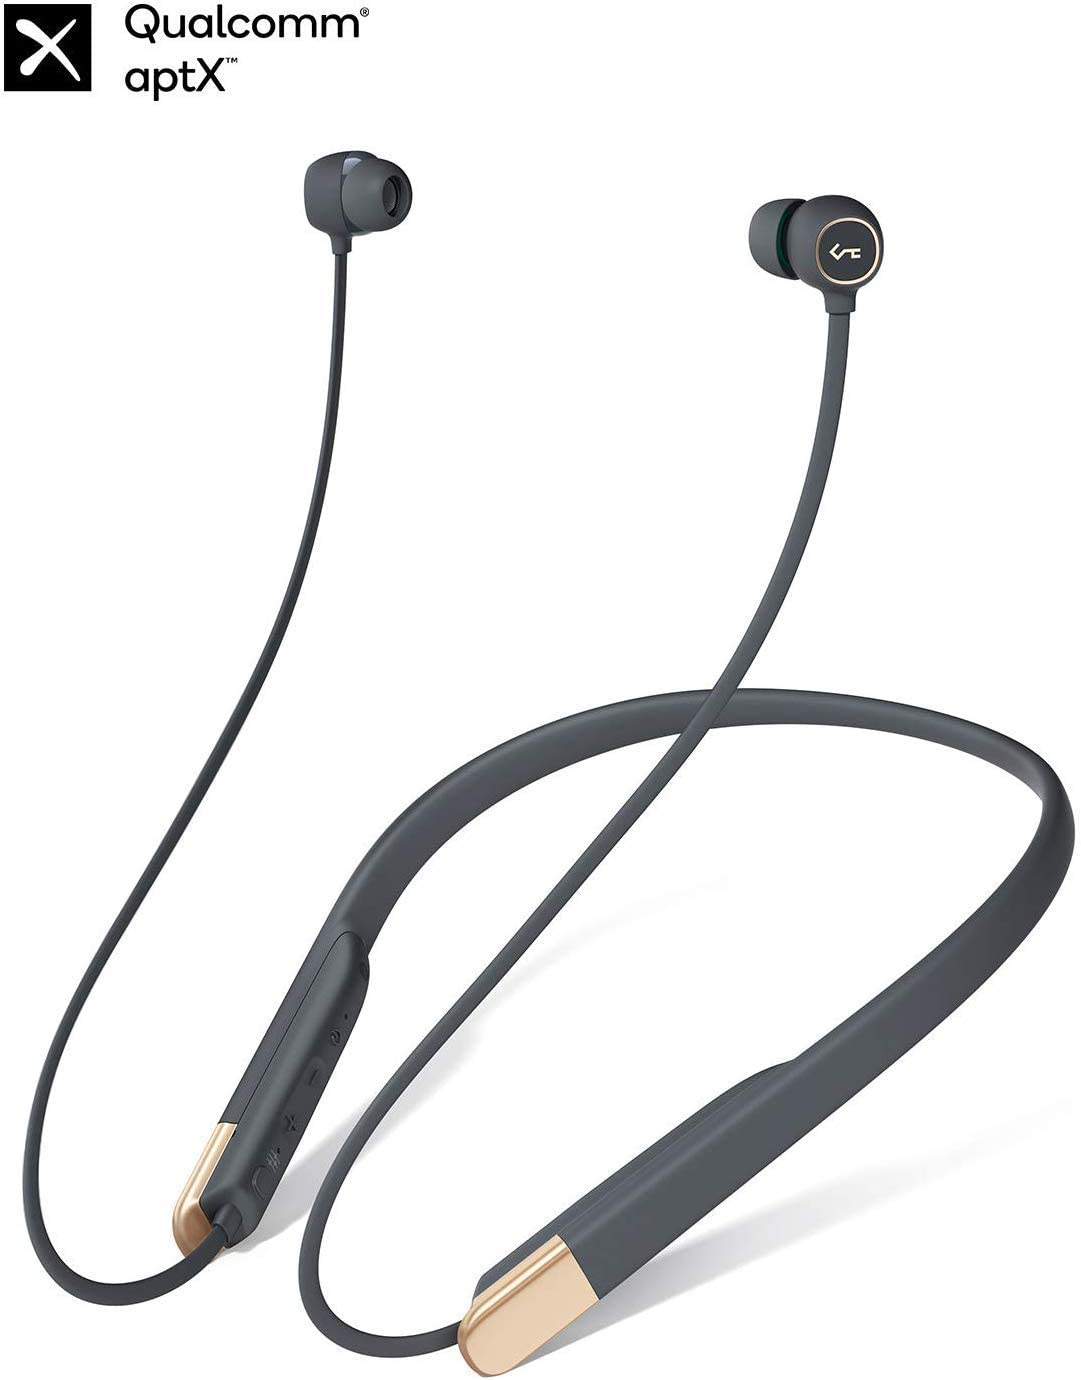 Bluetooth Headphones, AUKEY Key Series Wireless Earbuds Bluetooth 5.0 aptX Neckband Headset, in-Ear Sport Headphones with Built-in Mic, Magnetic Play Pause, 8H Playtime, 3 EQ Modes, IPX6 Sweatproof